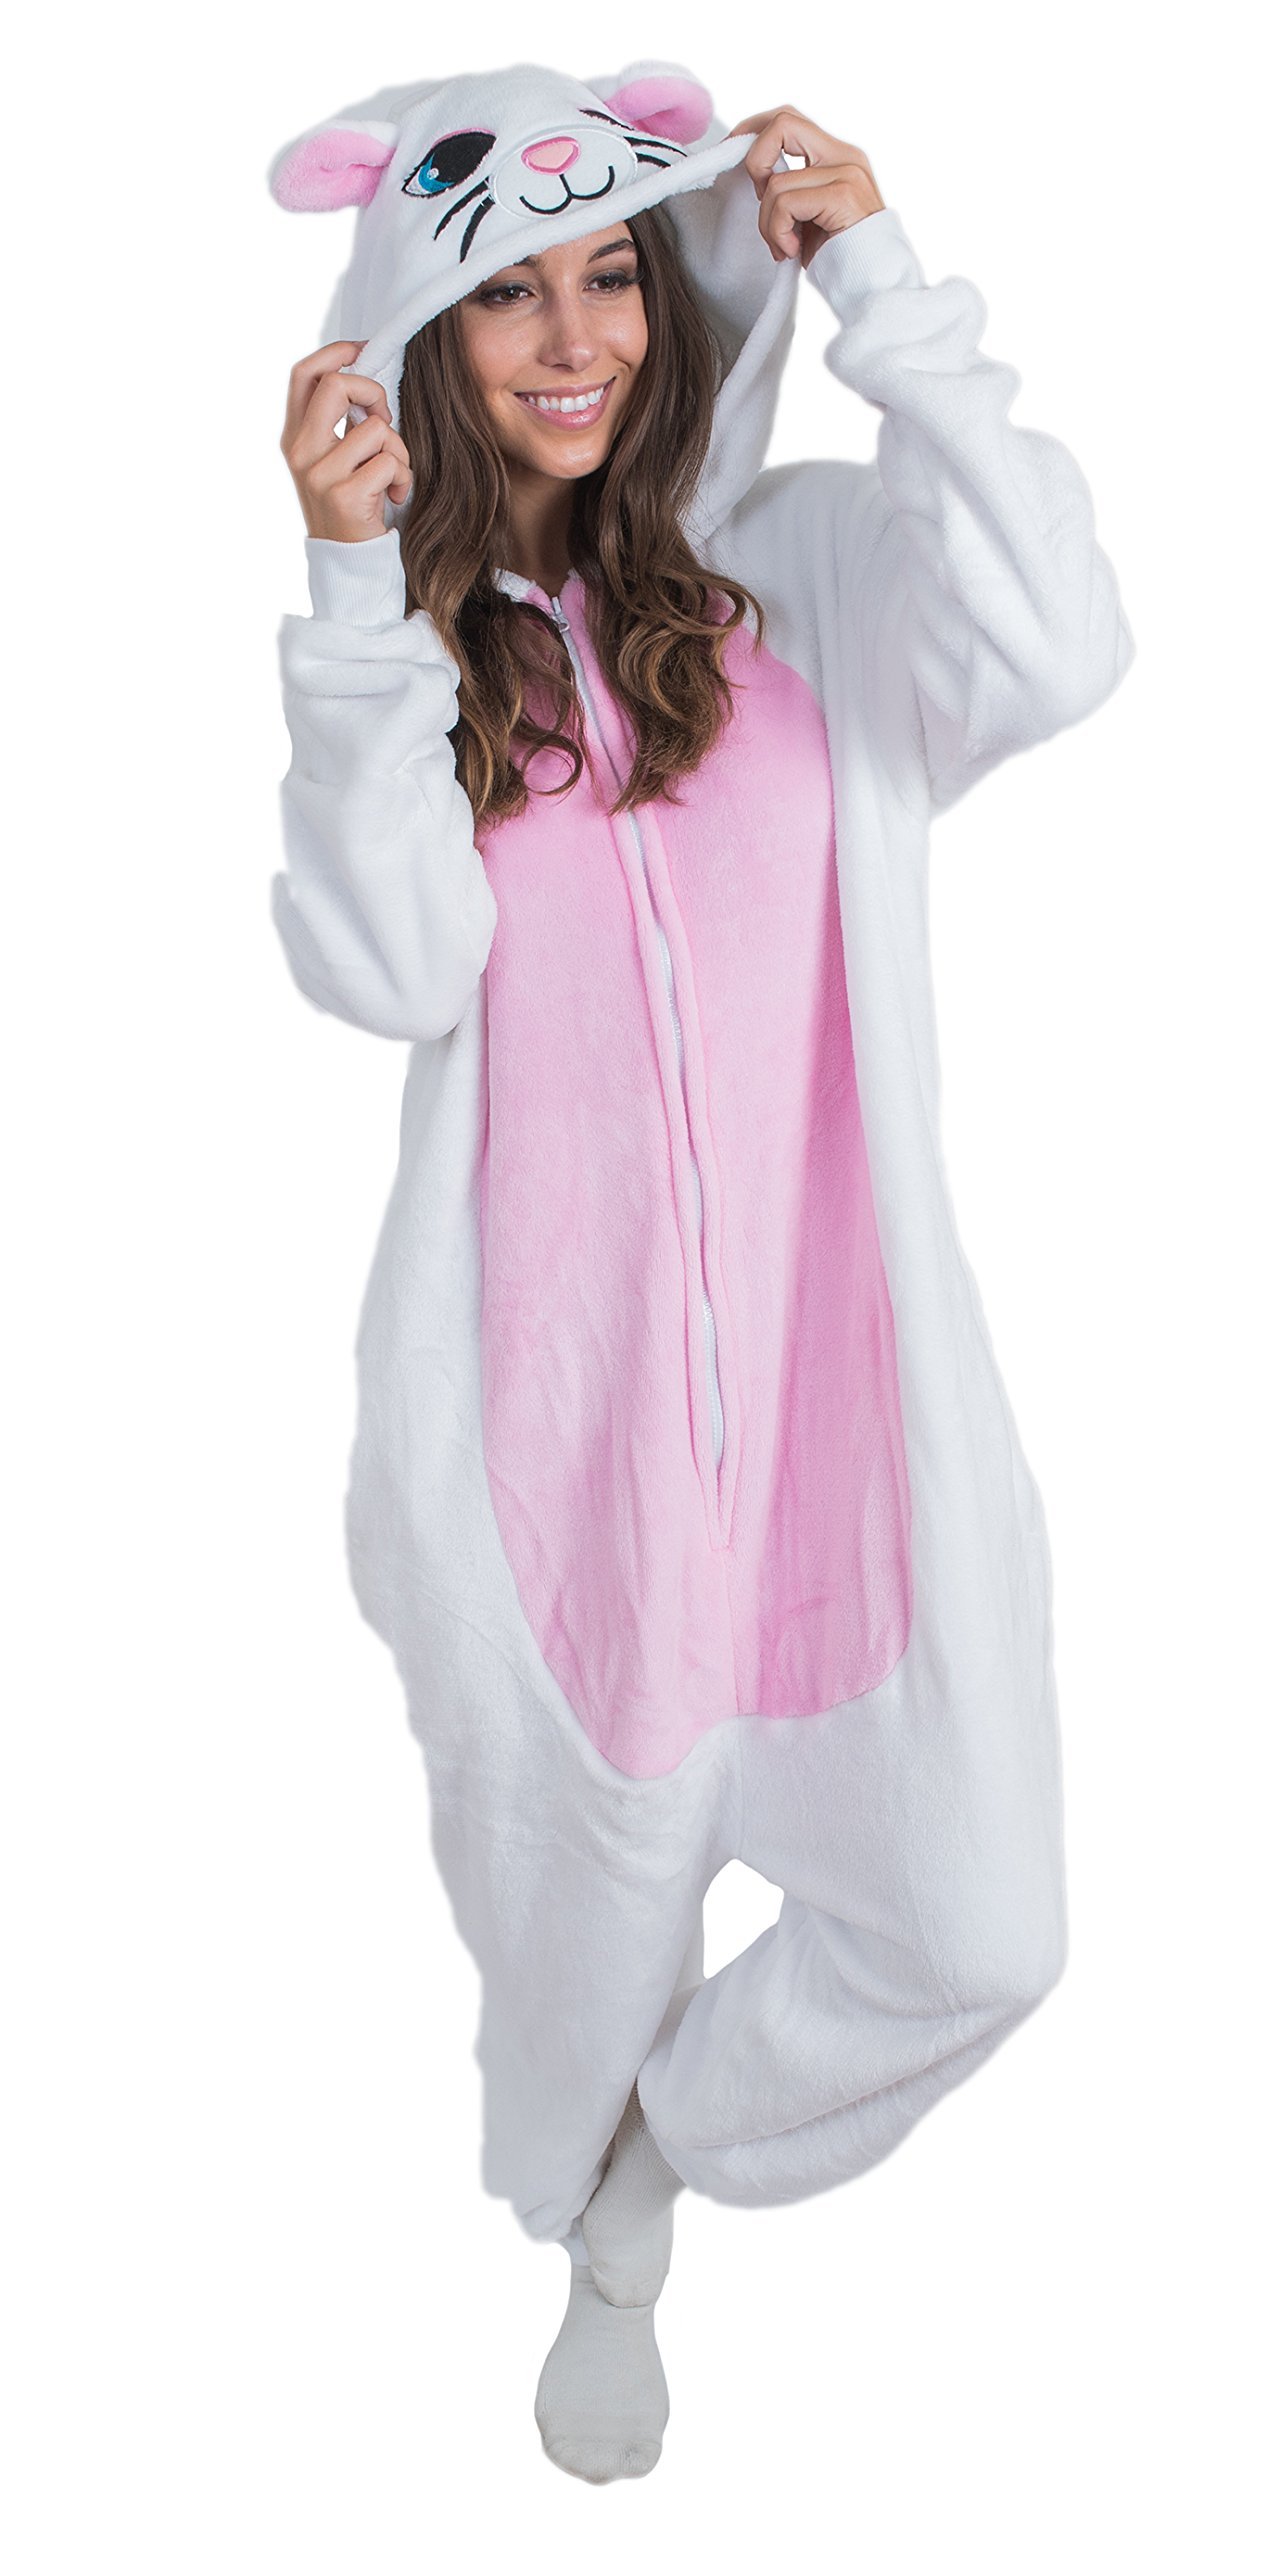 Bad Bear Brand Adult Onesie Cat Animal Pajamas Comfortable Costume With Zipper and Pockets (Small) by Bad Bear Brand (Image #2)